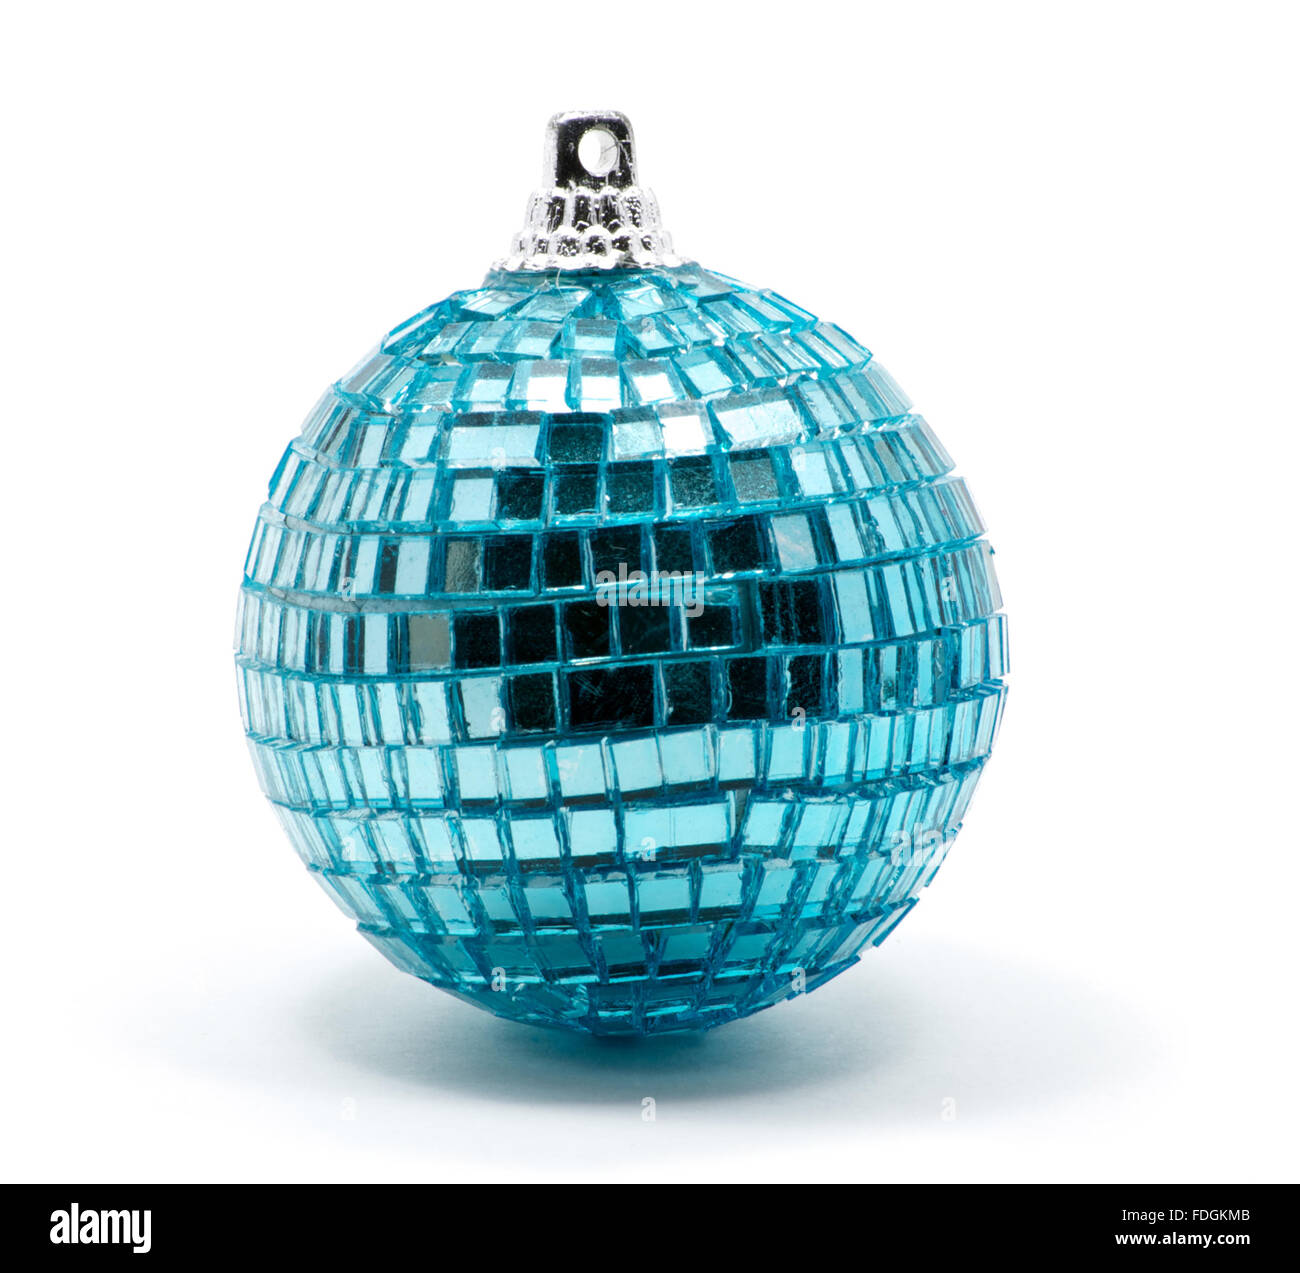 Isolated blue Christmas tree ball with glitters over white - Stock Image